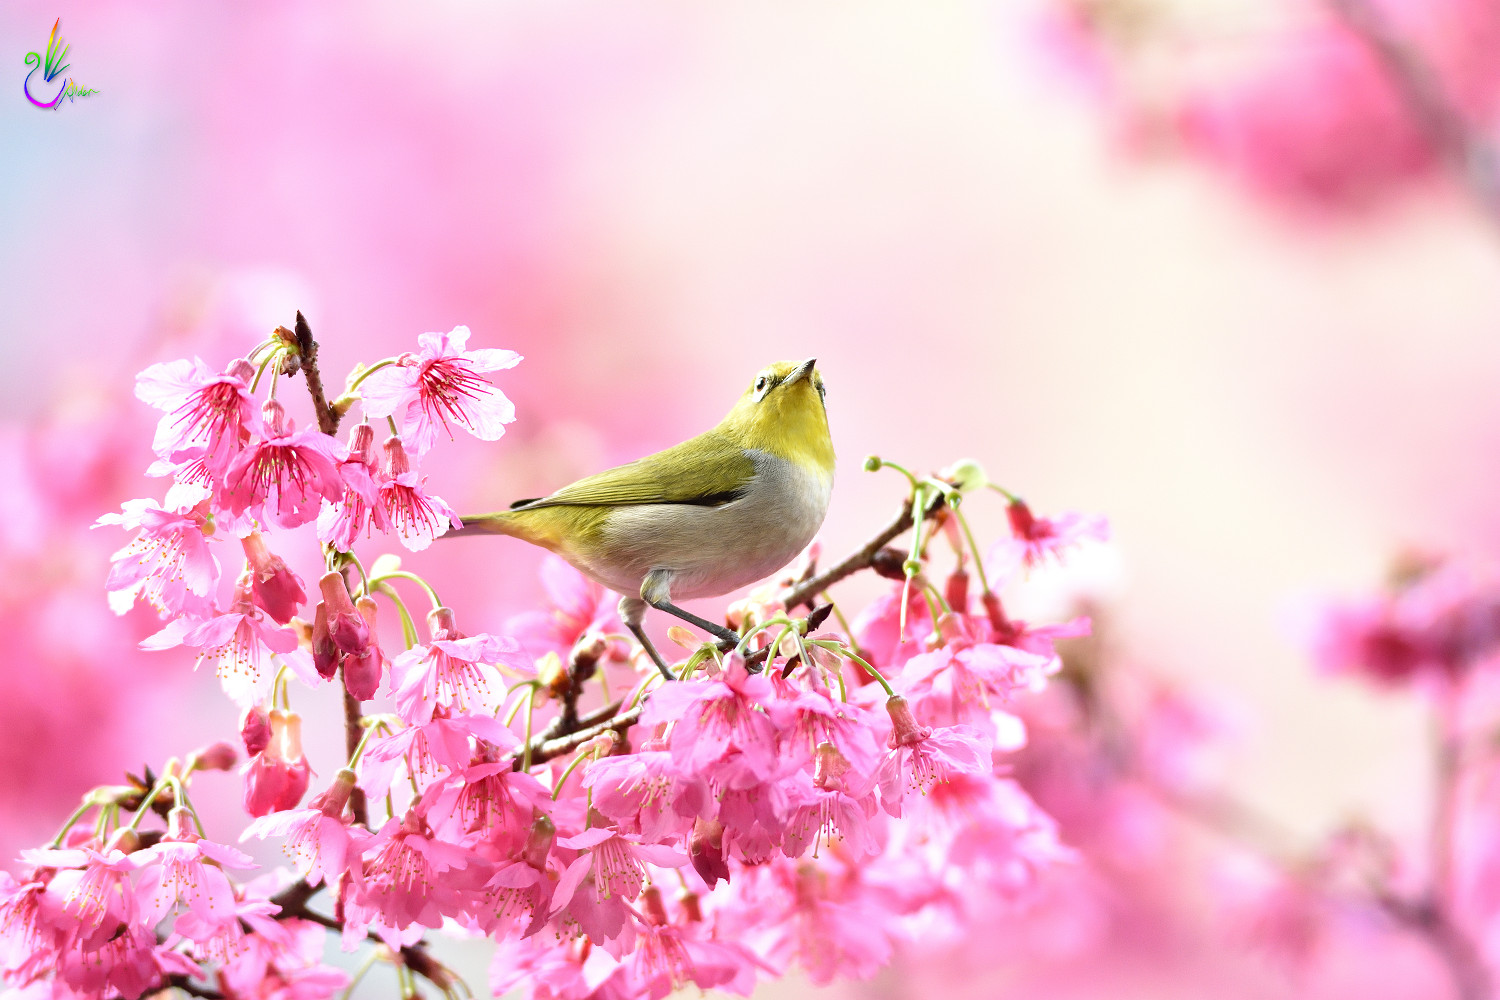 Sakura_White-eye_7876